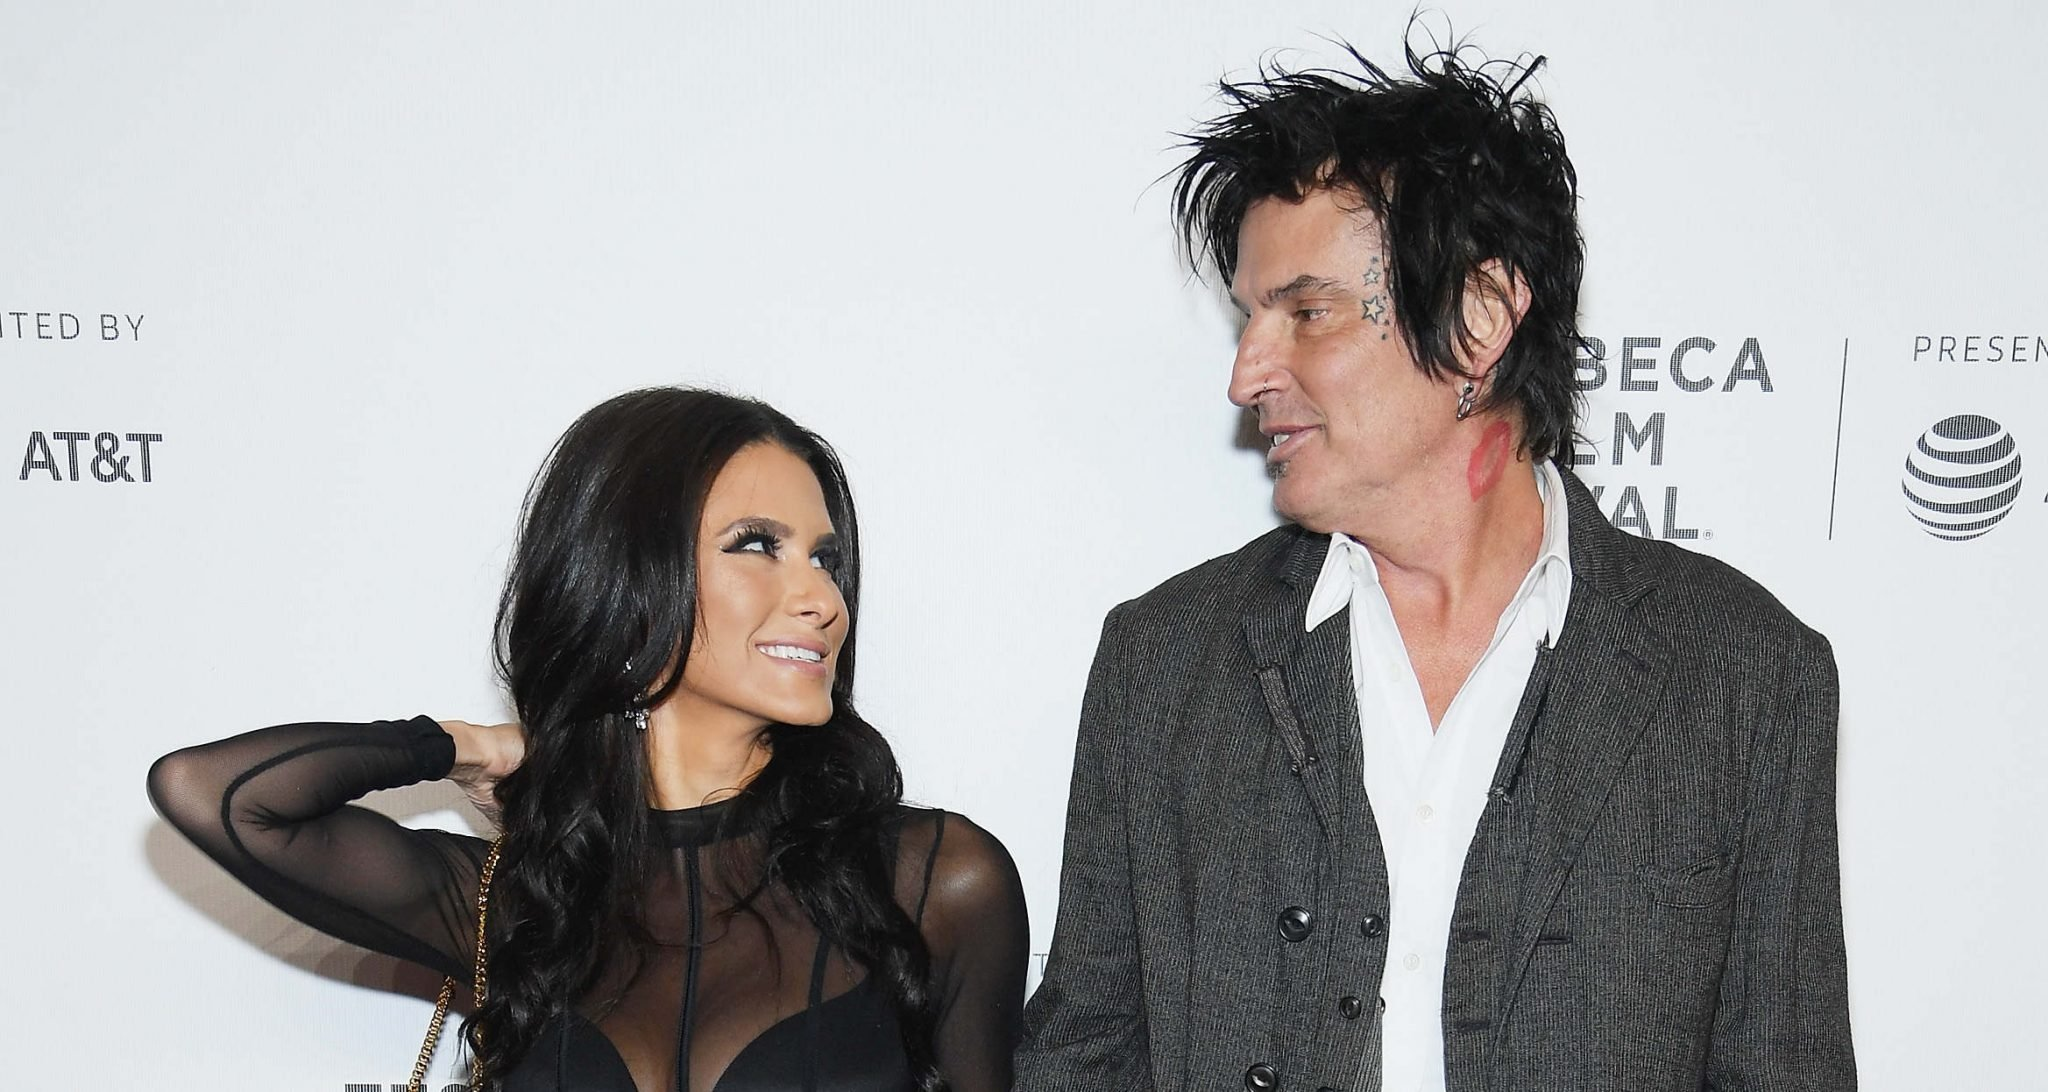 Tommy Lee and Brittany Furlan photos